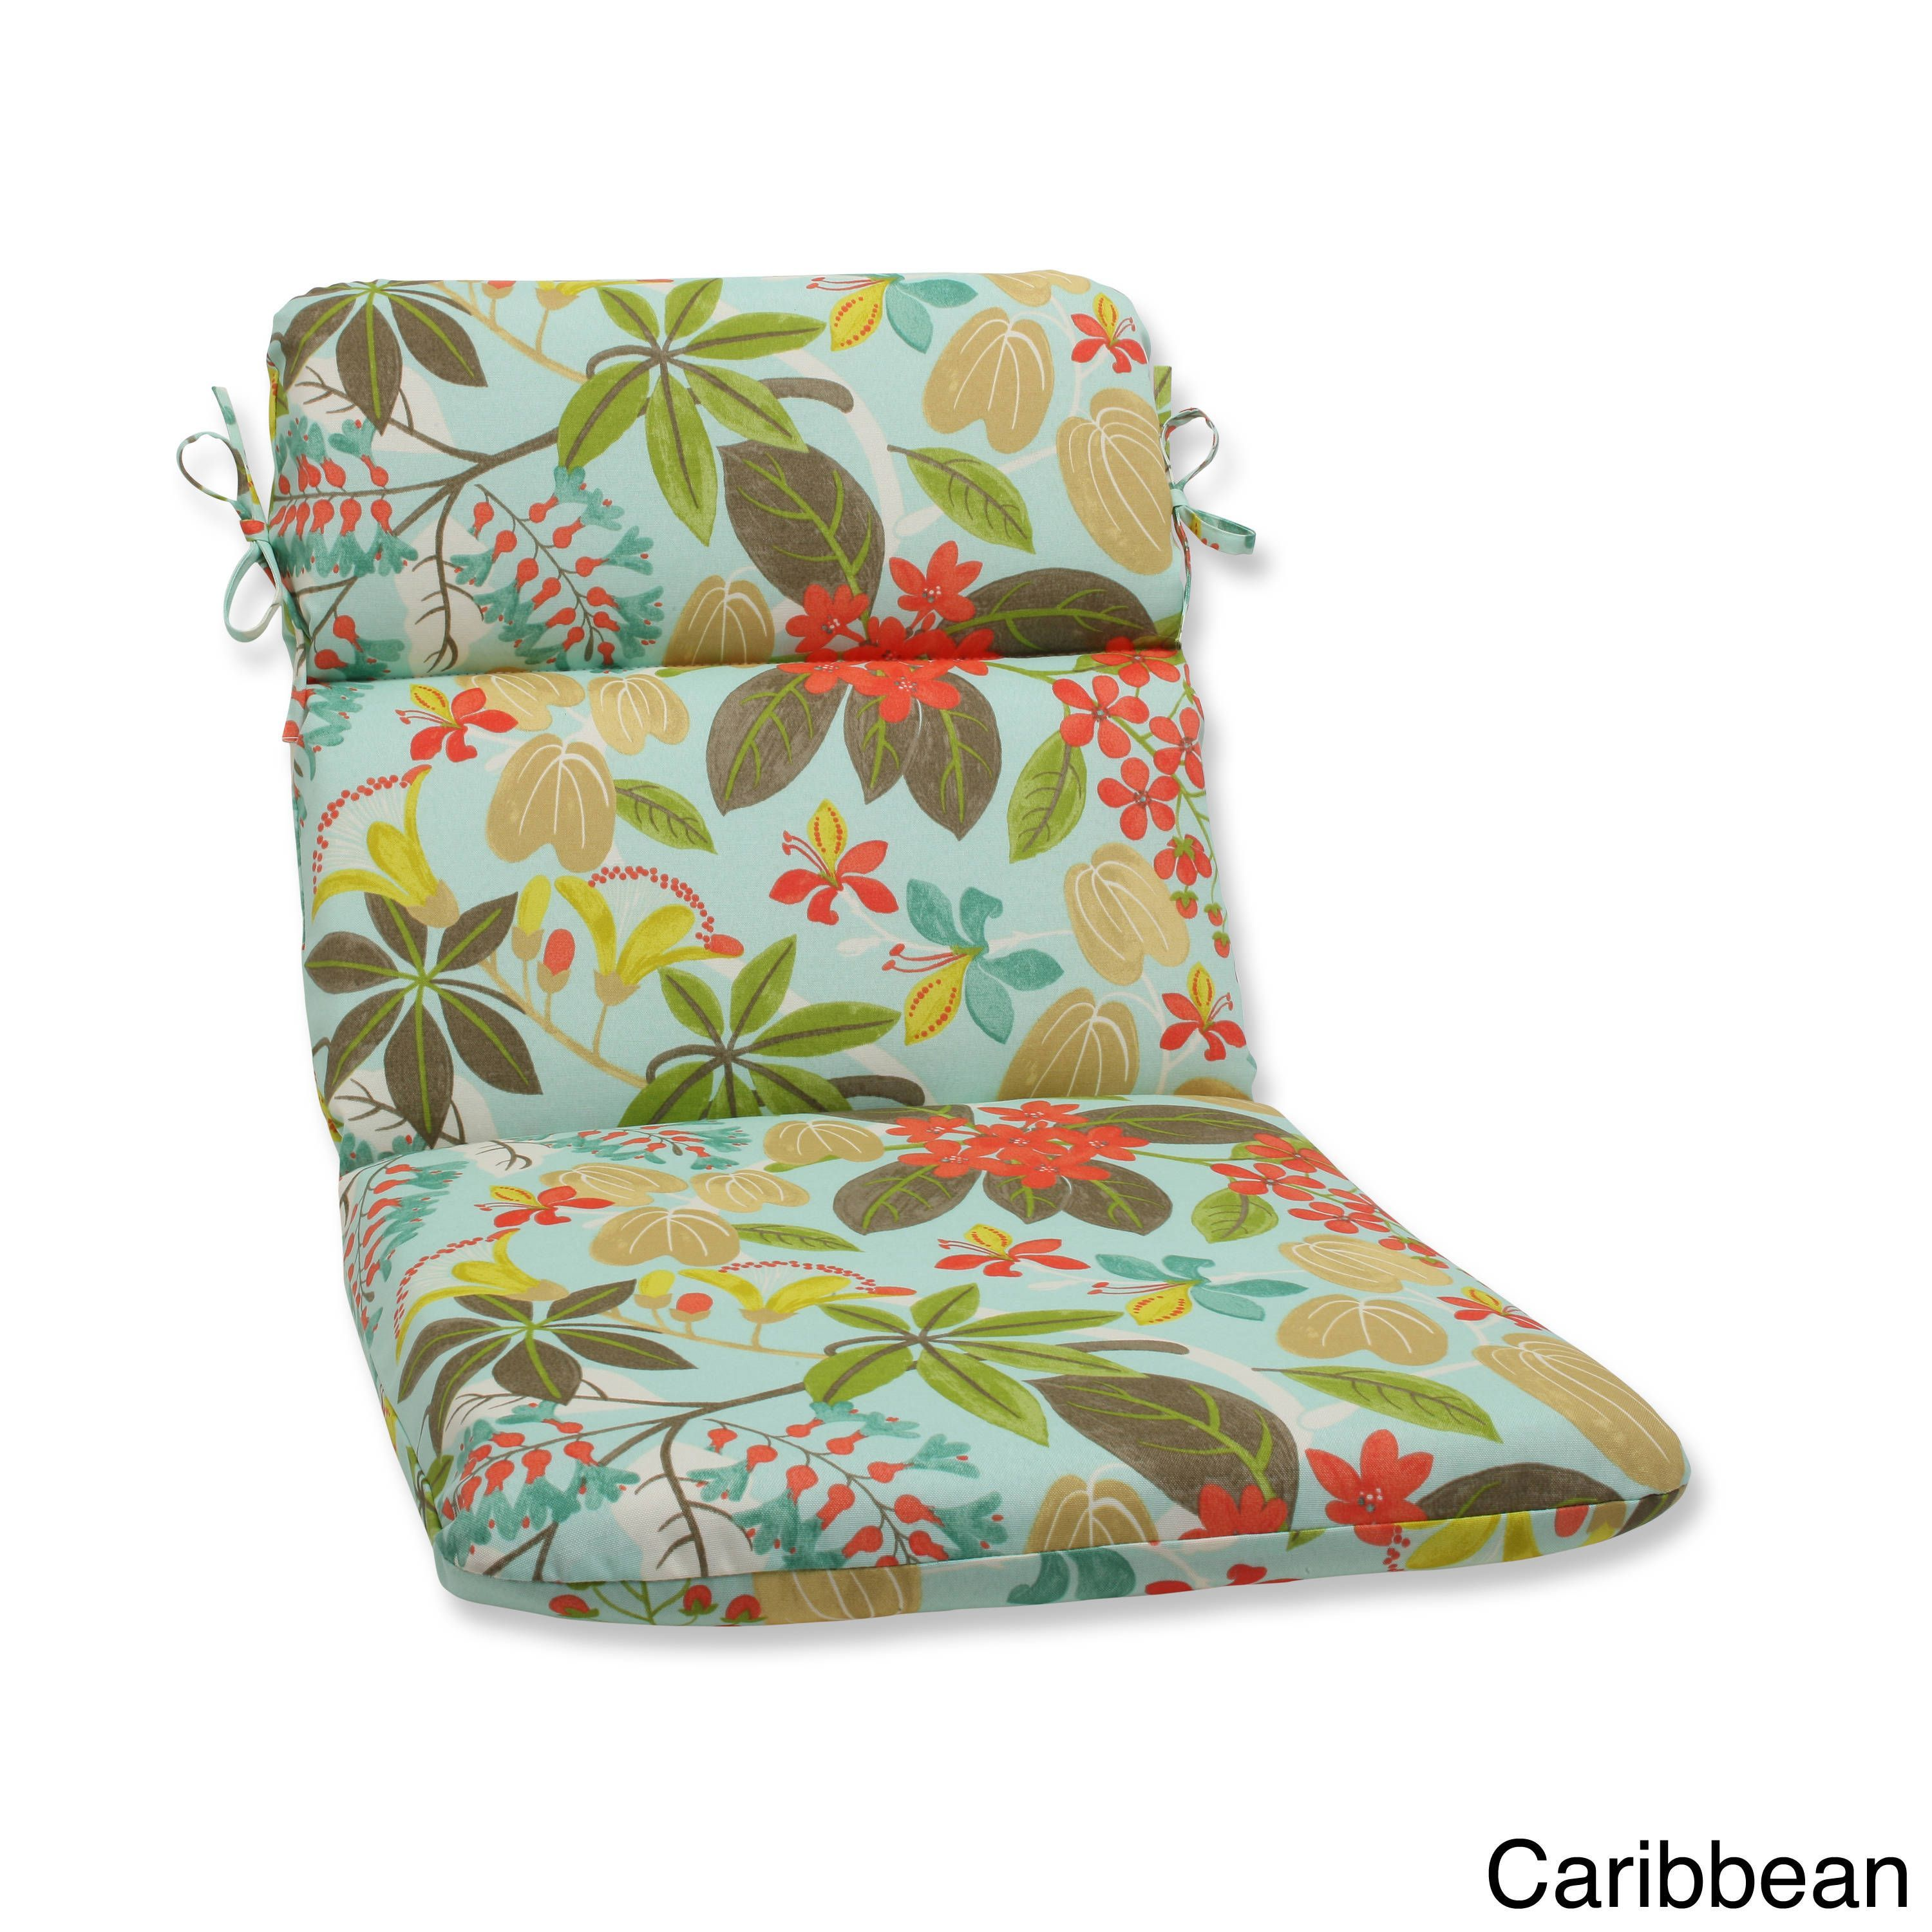 Pillow perfect outdoor fancy a floral rounded corners chair cushion